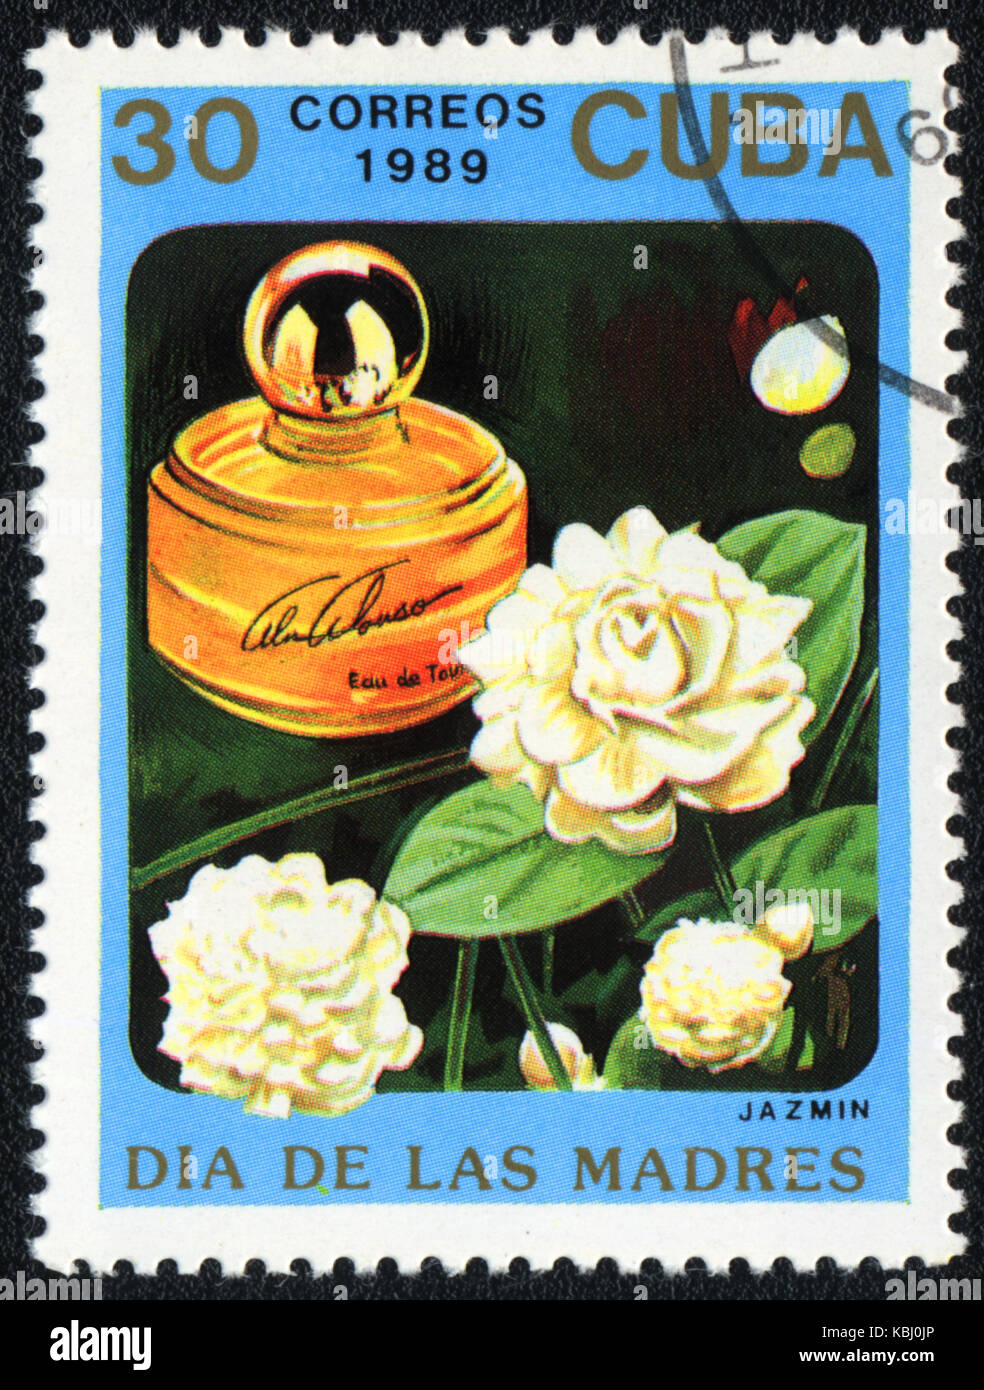 A stamp printed in CUBA shows a Bottle of jazmin perfume, circa 1989 - Stock Image